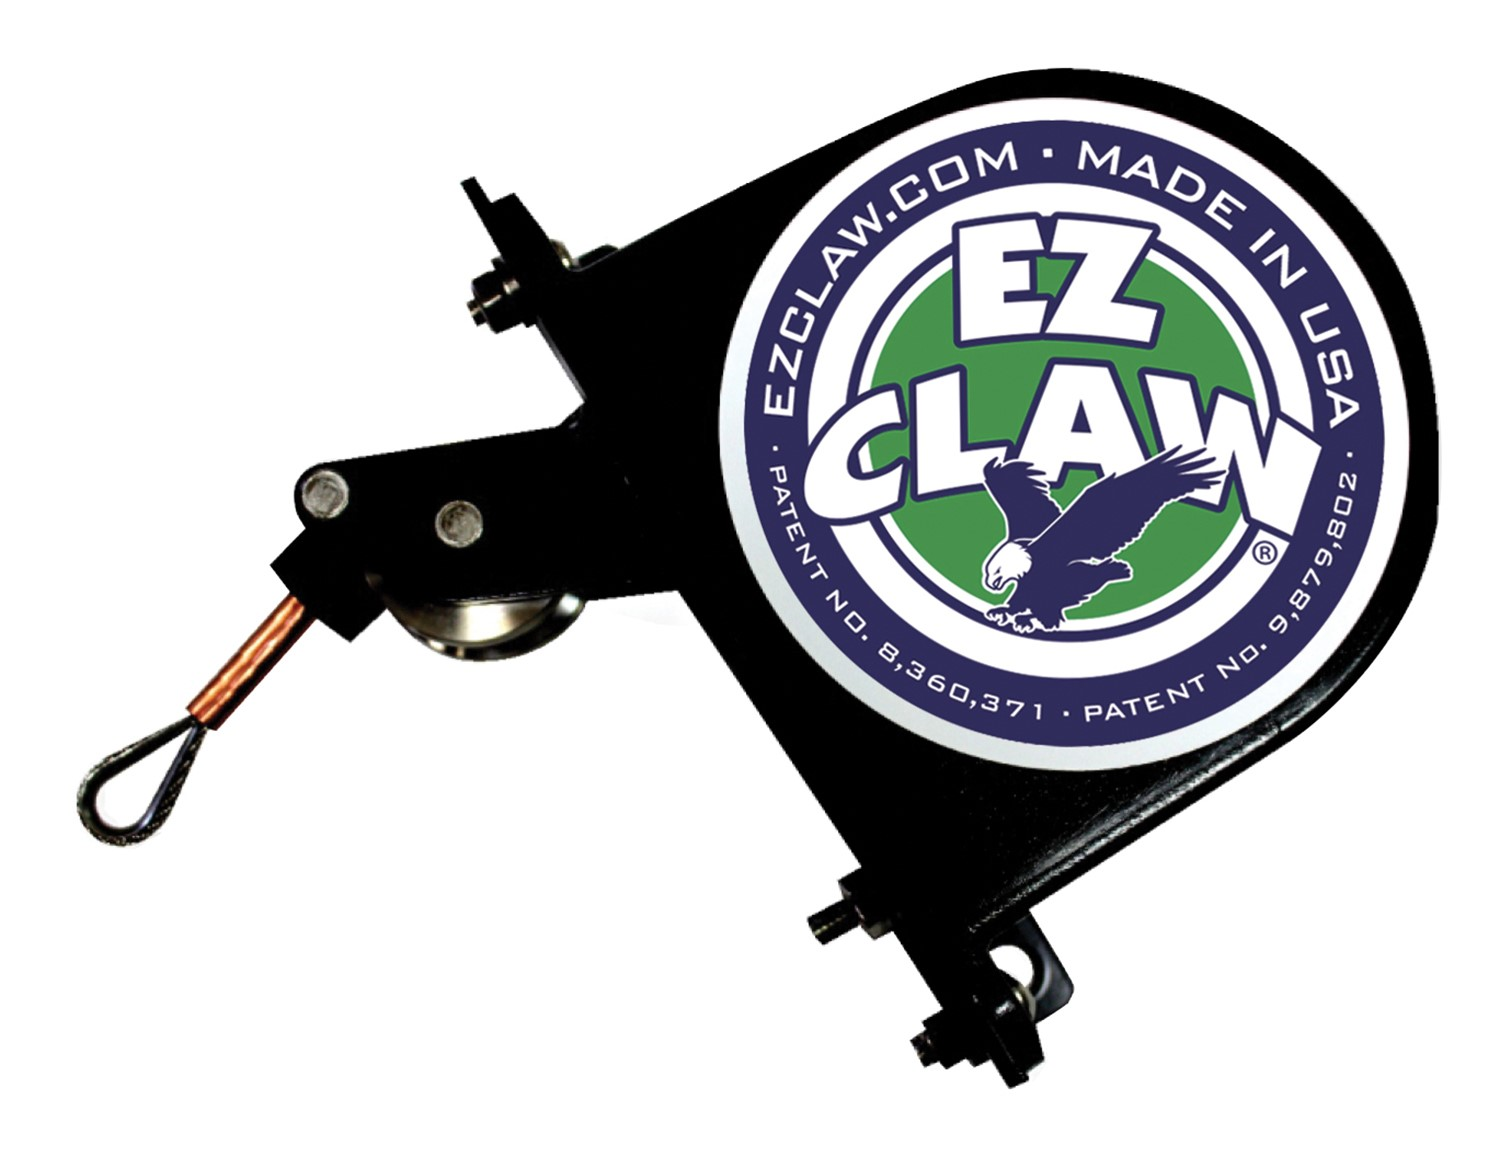 81-2300 – EZ Claw Tensioner System, 25 lb tension rating (adjustable)